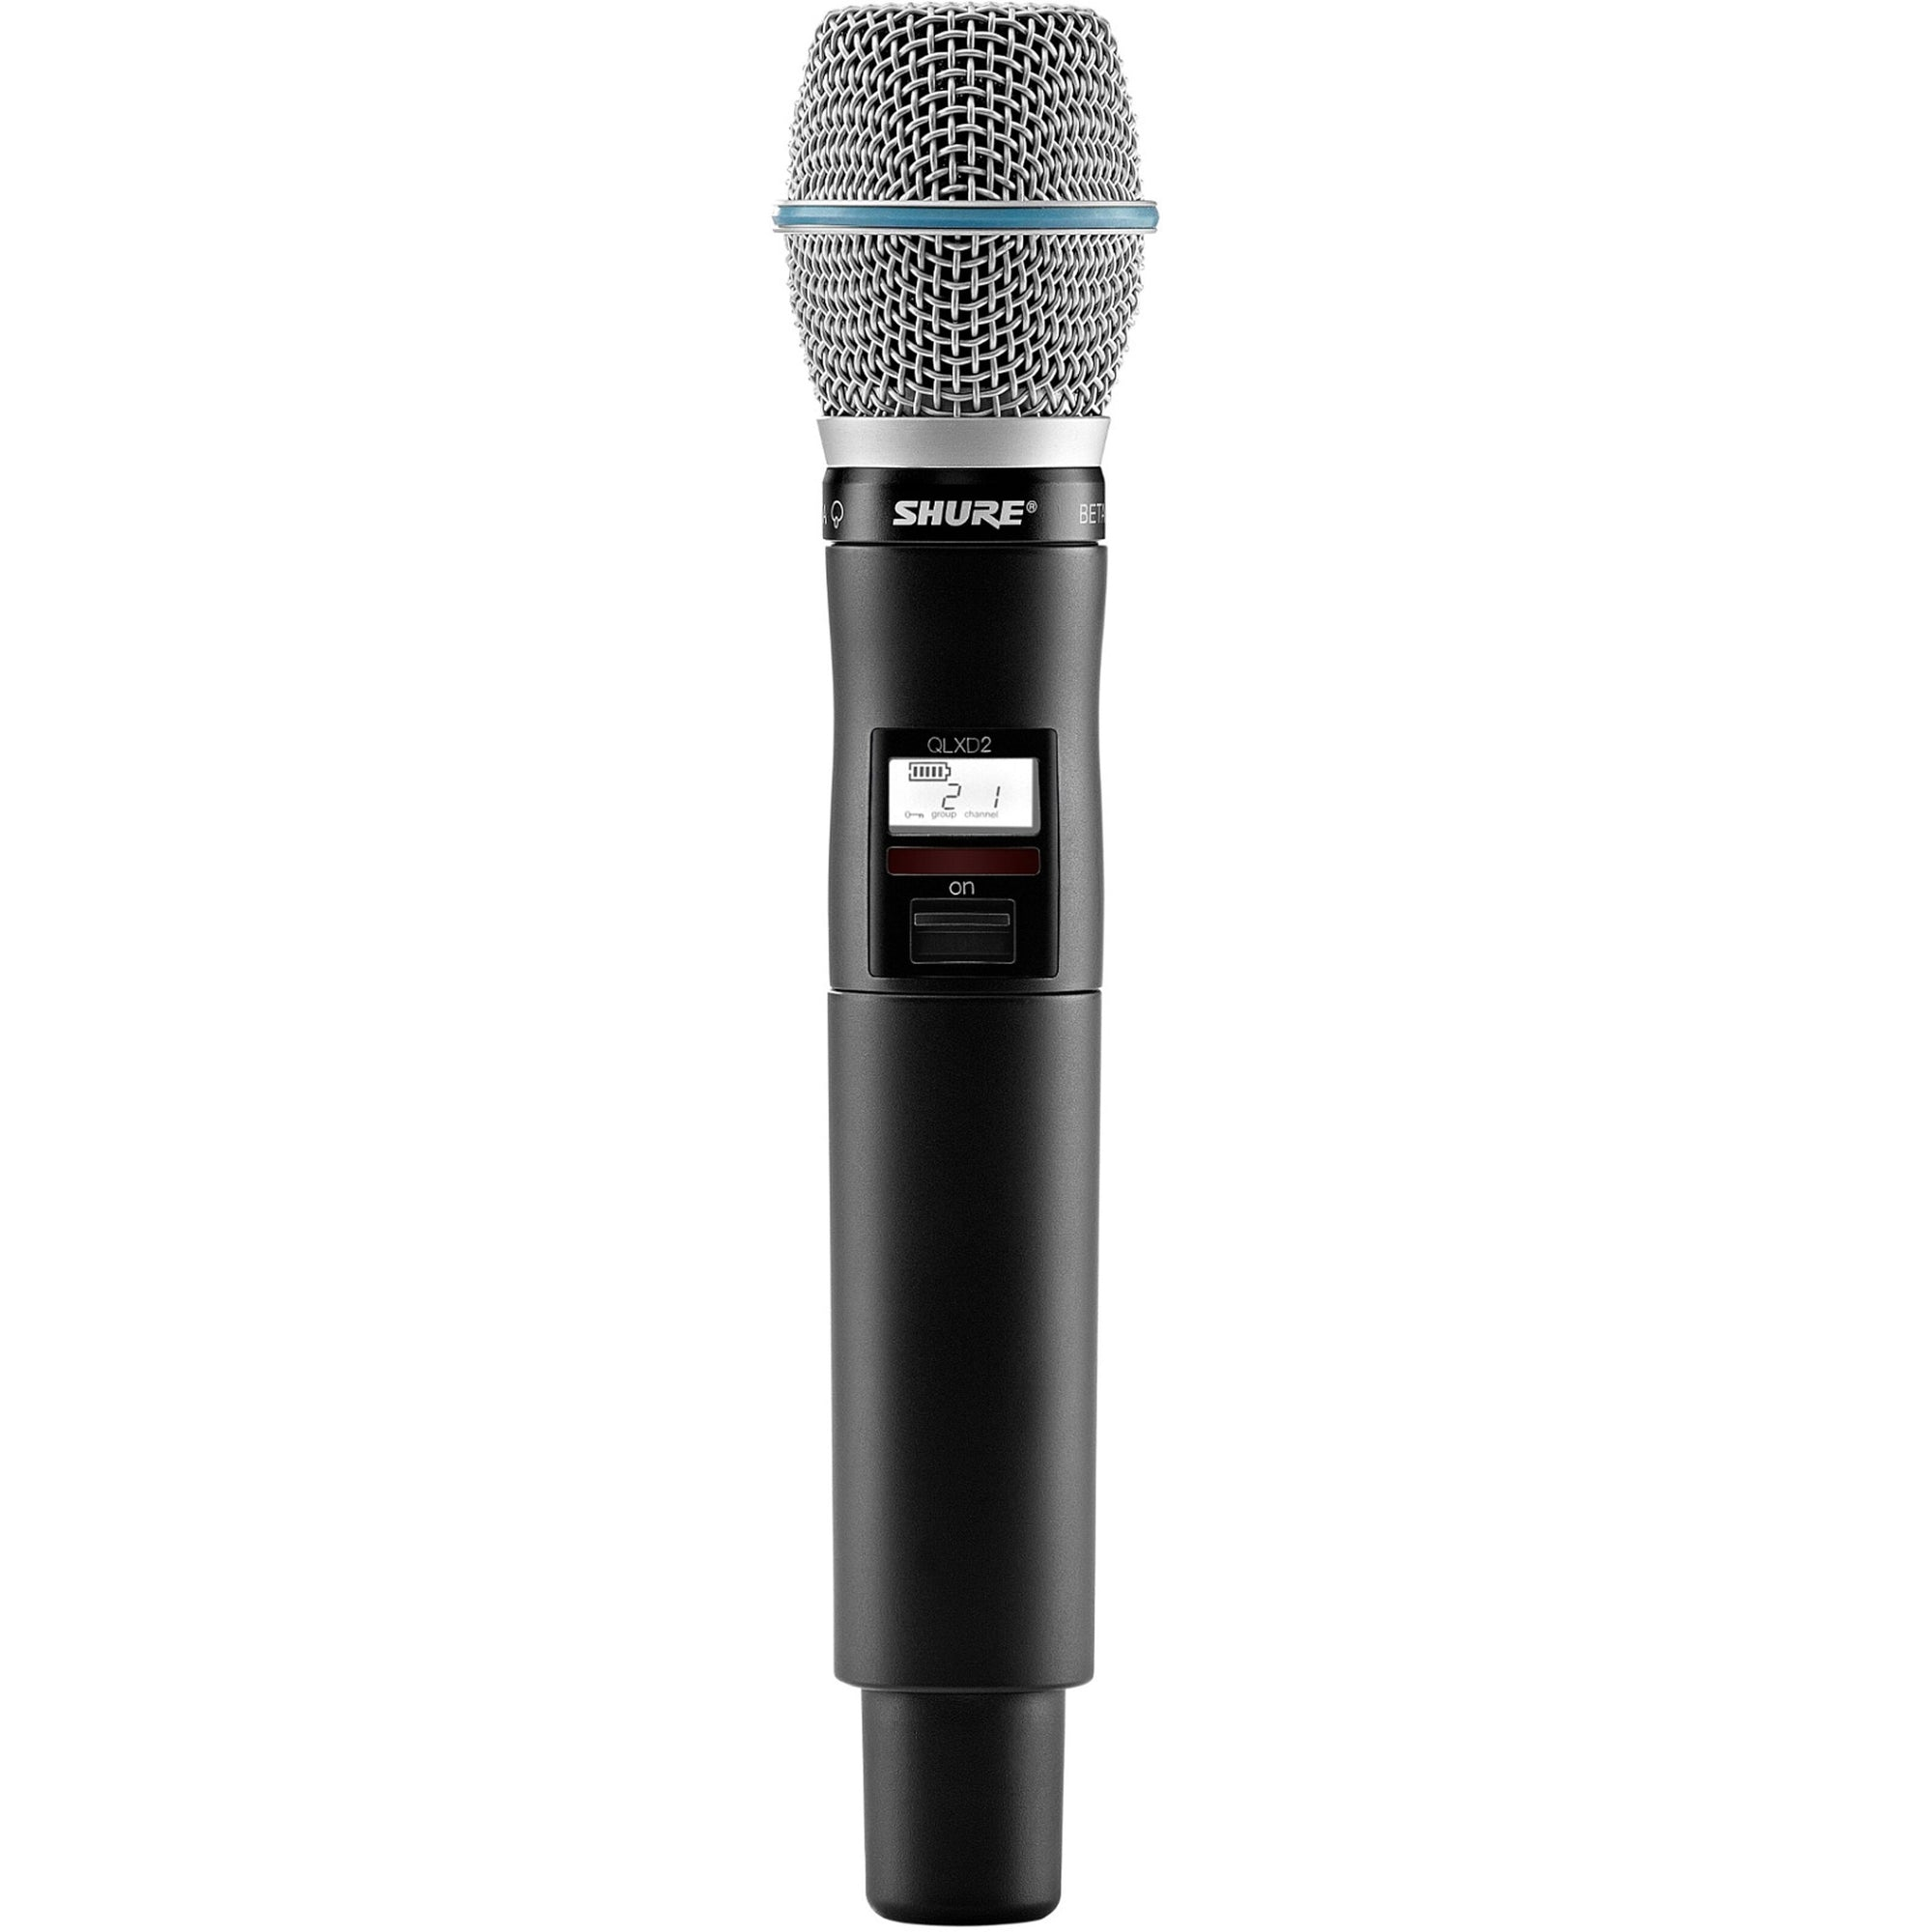 Shure QLXD24B87A Wireless System with Beta 87a Handheld Microphone Transmitter, Band J50A (572 - 608 MHz)